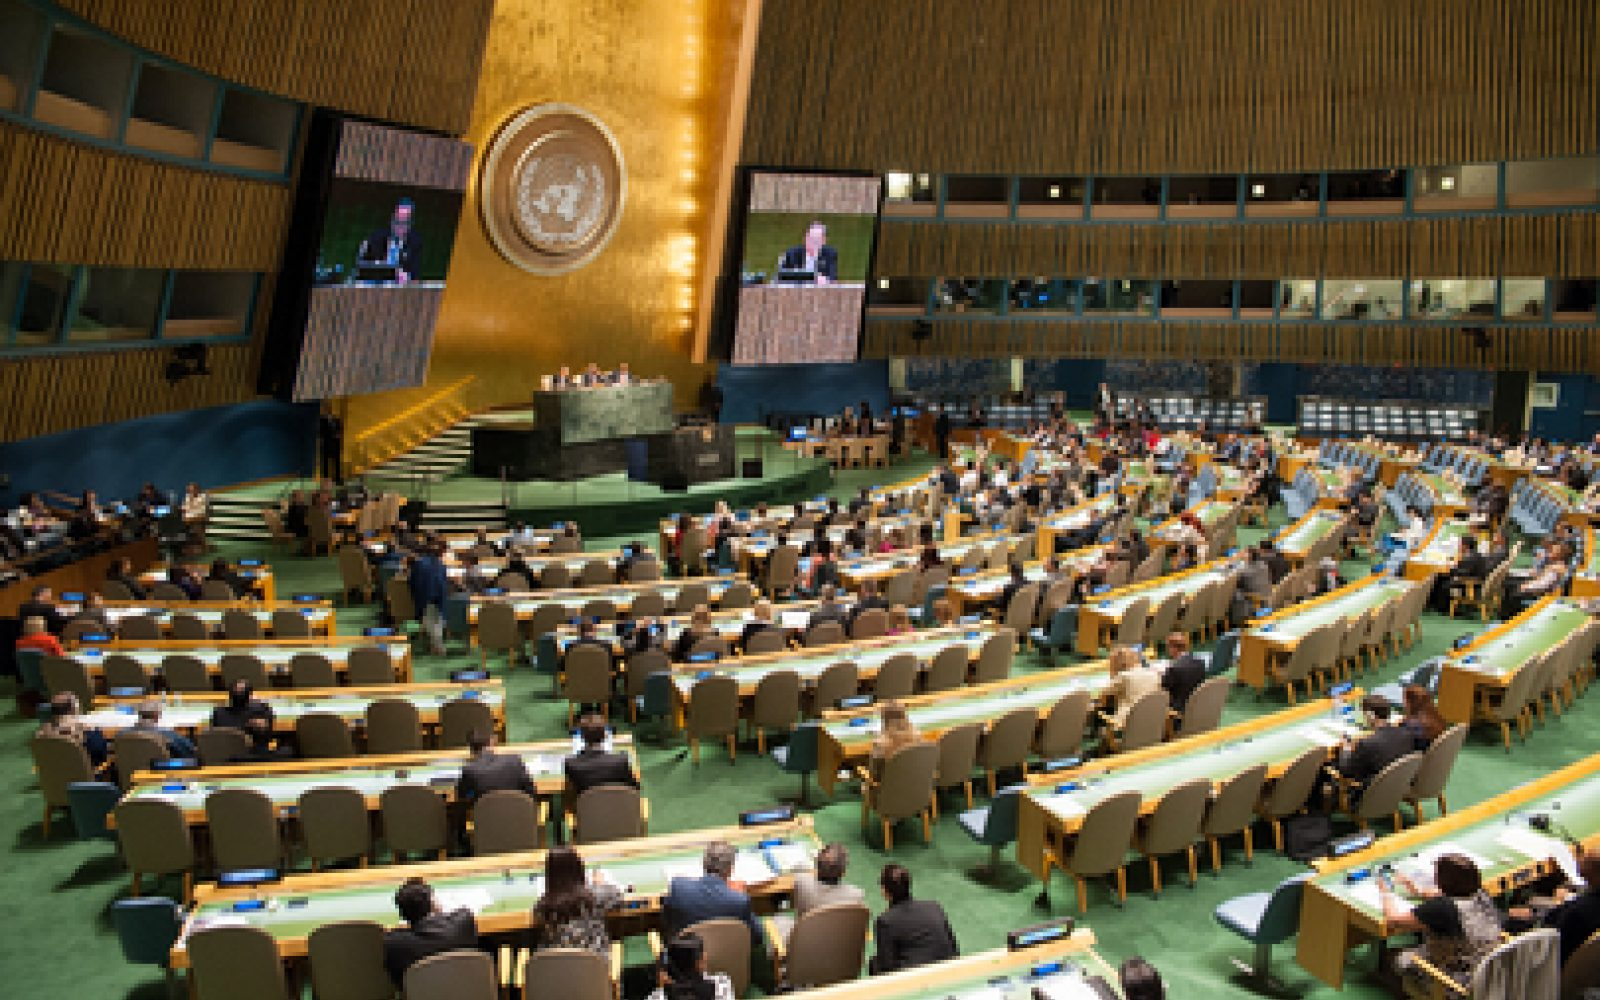 Cameron promotes fracking at UN Climate Summit